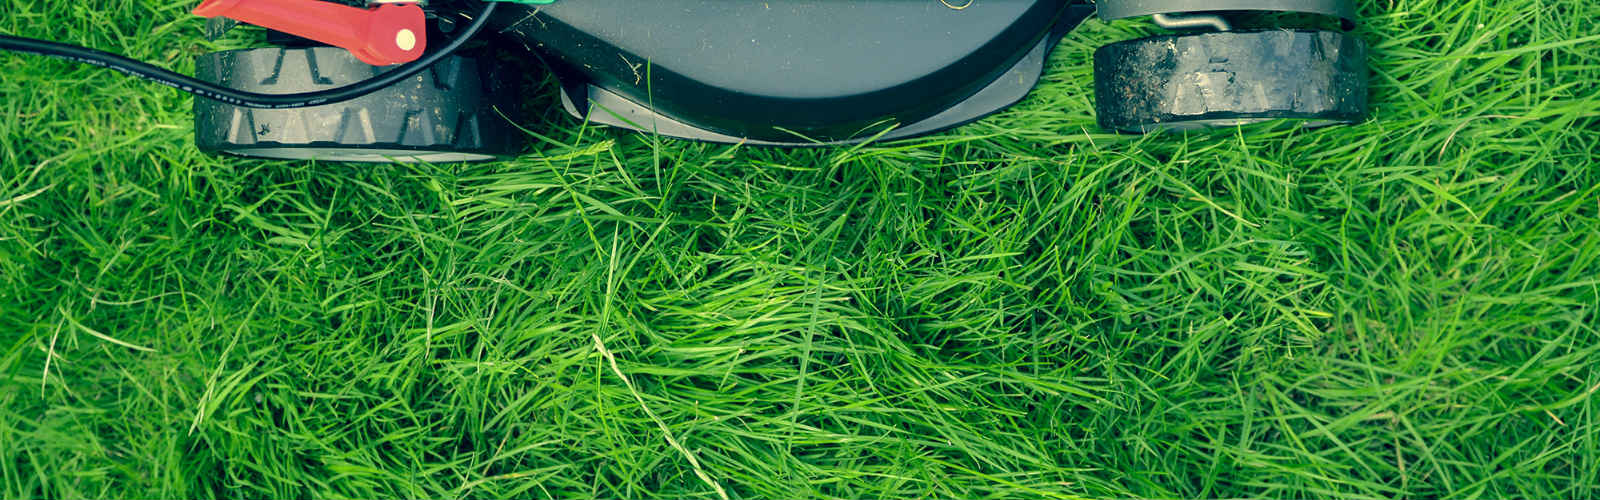 Alamo lawns mowing lawns for a healthier lawn this summer